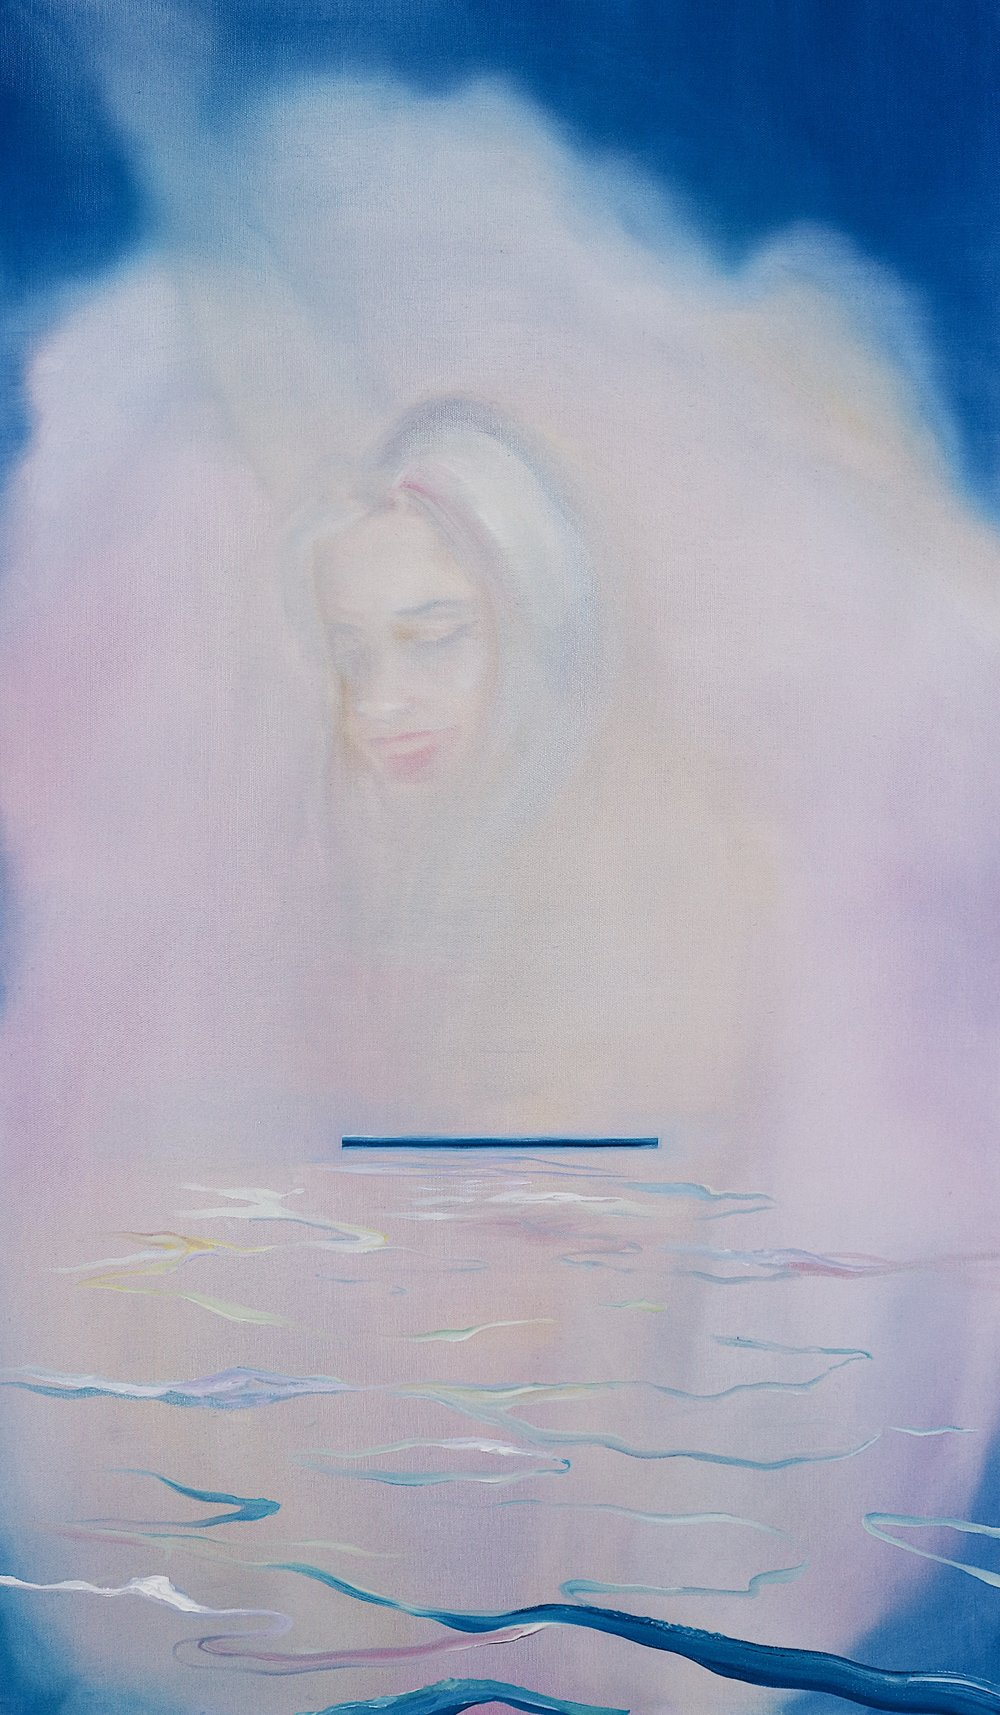 "Millie, of the sea   2018  oil on canvas  38"" x 22""  © Mikaela McLeish 2018"